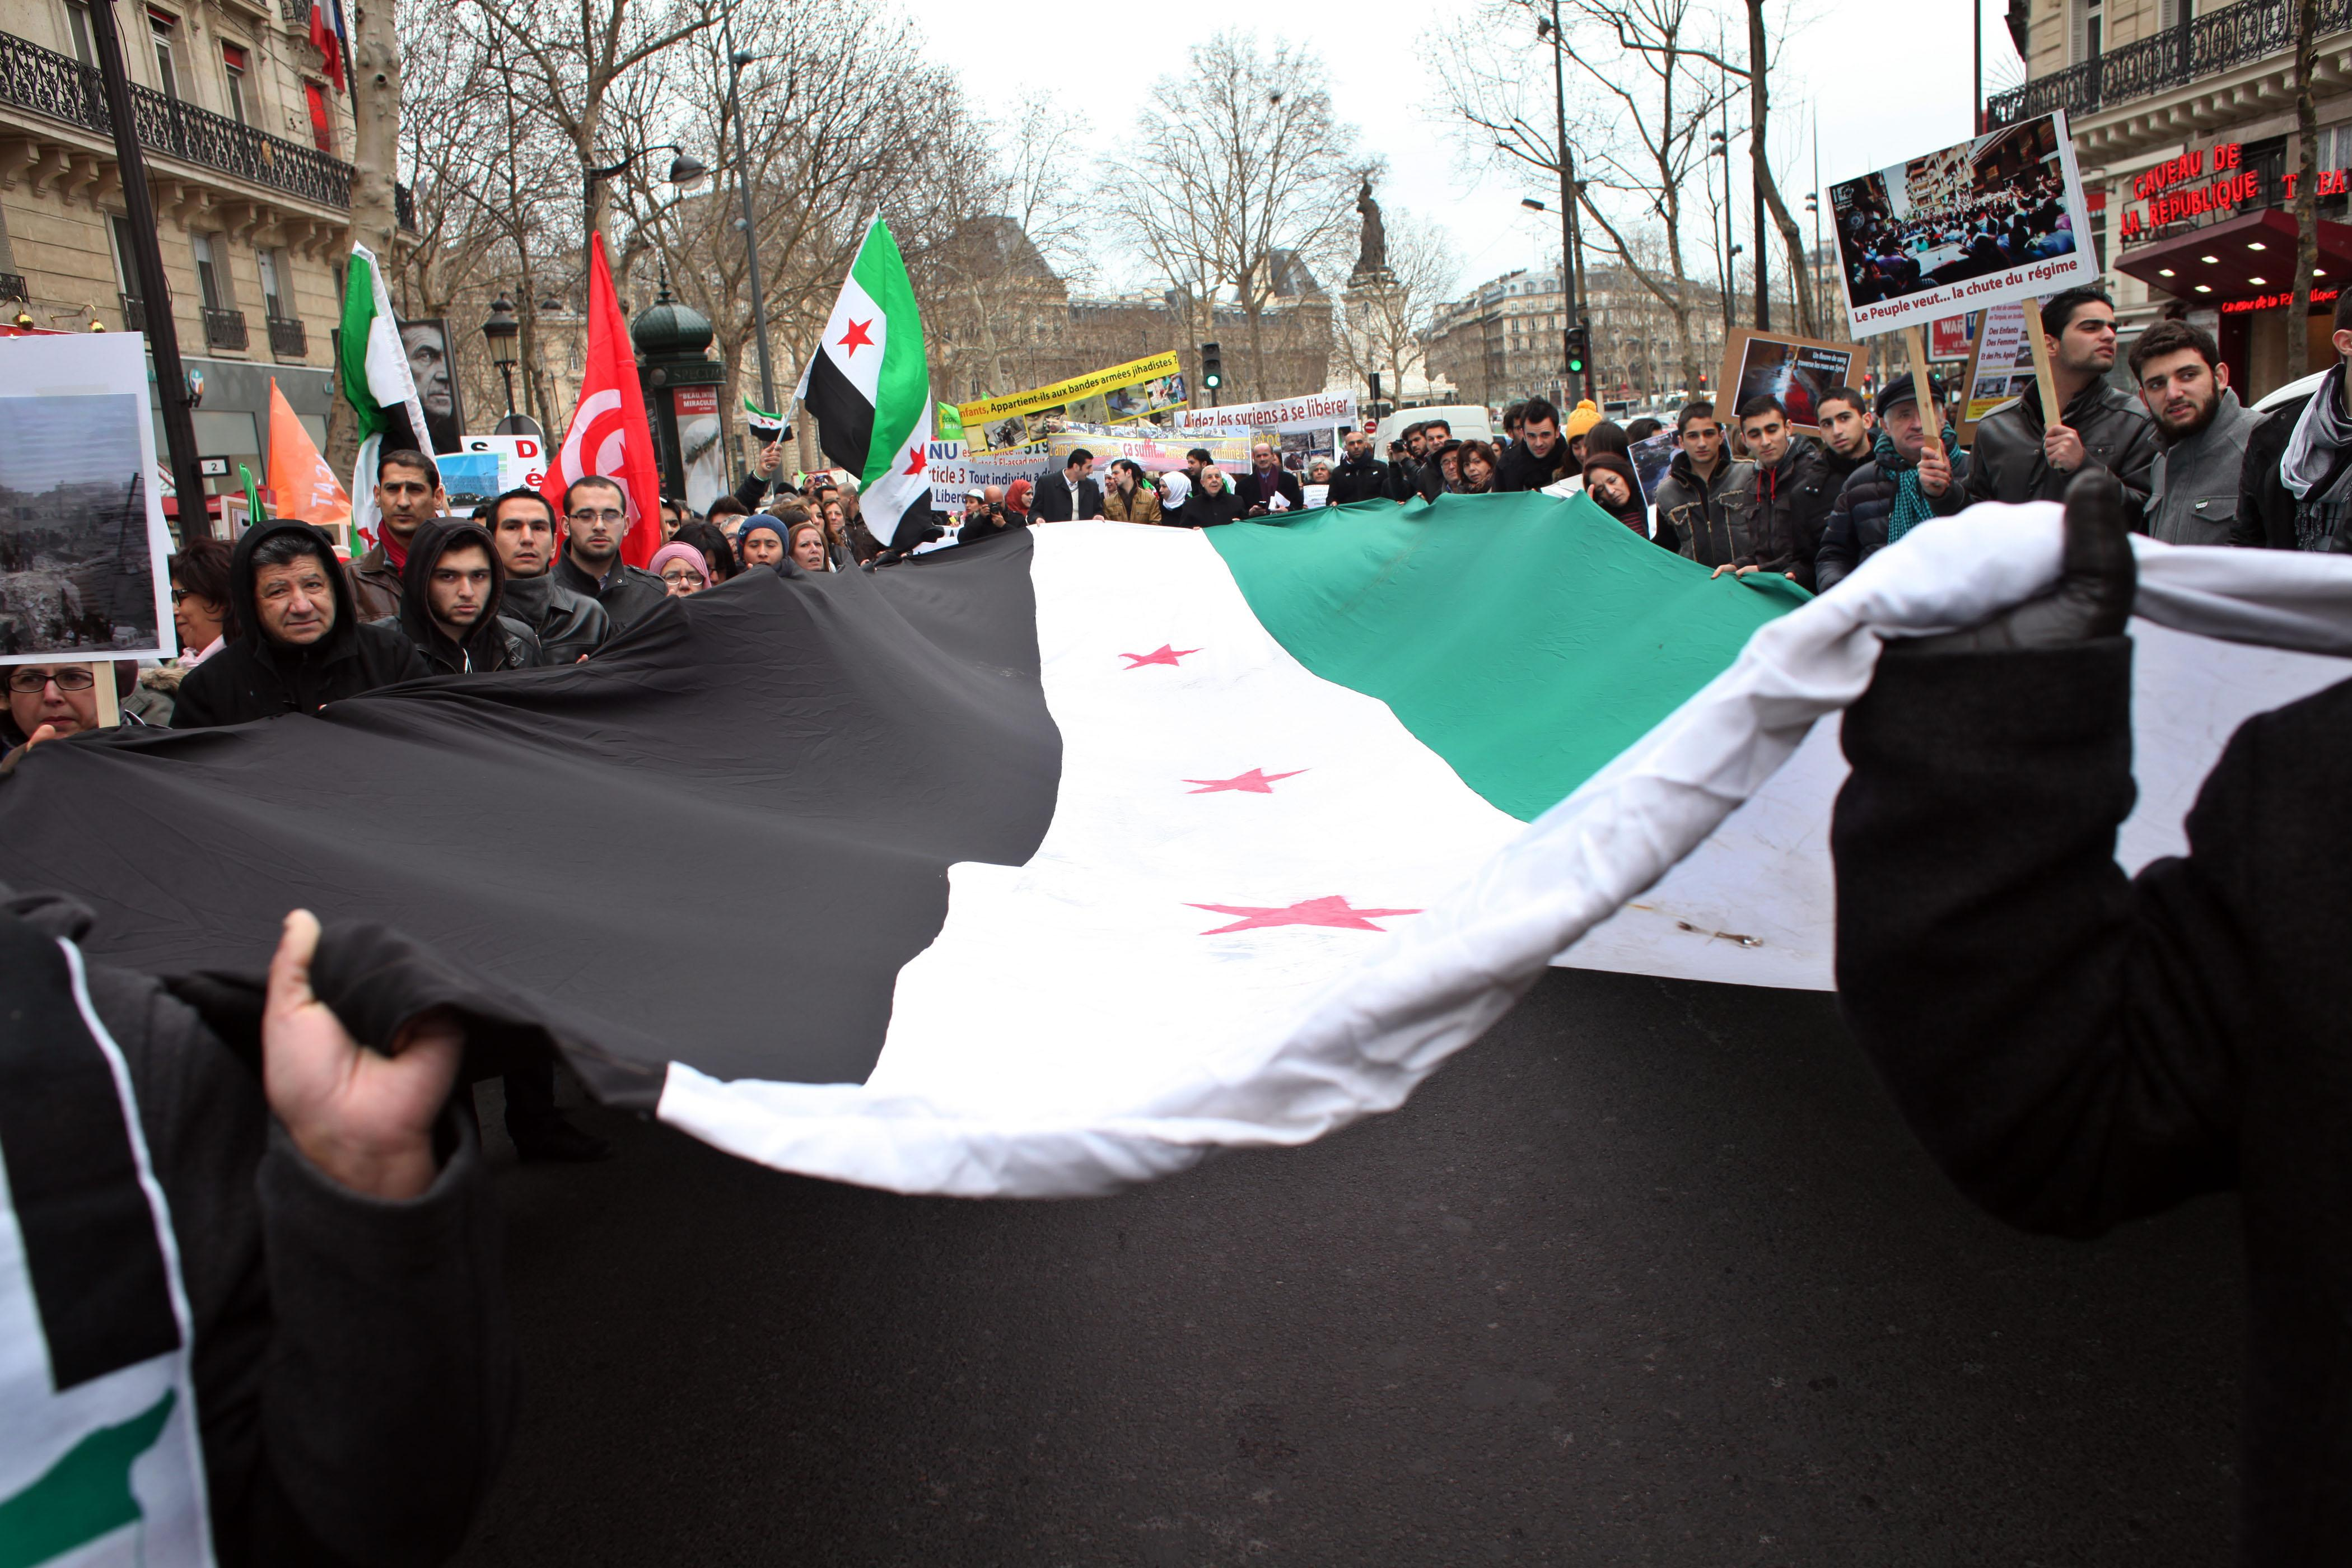 Demonstrators hold a giant Syrian flag during a march to mark the second anniversary of the revolt against government of Syrian President Bashar Assad, in Paris, Saturday, March 16, 2013. The French President Francois Hollande said Thursday his country and Britain are pushing the European Union to quickly lift its arms embargo on Syria so that they can send weapons to rebel fighters. (AP Photo/Thibault Camus)